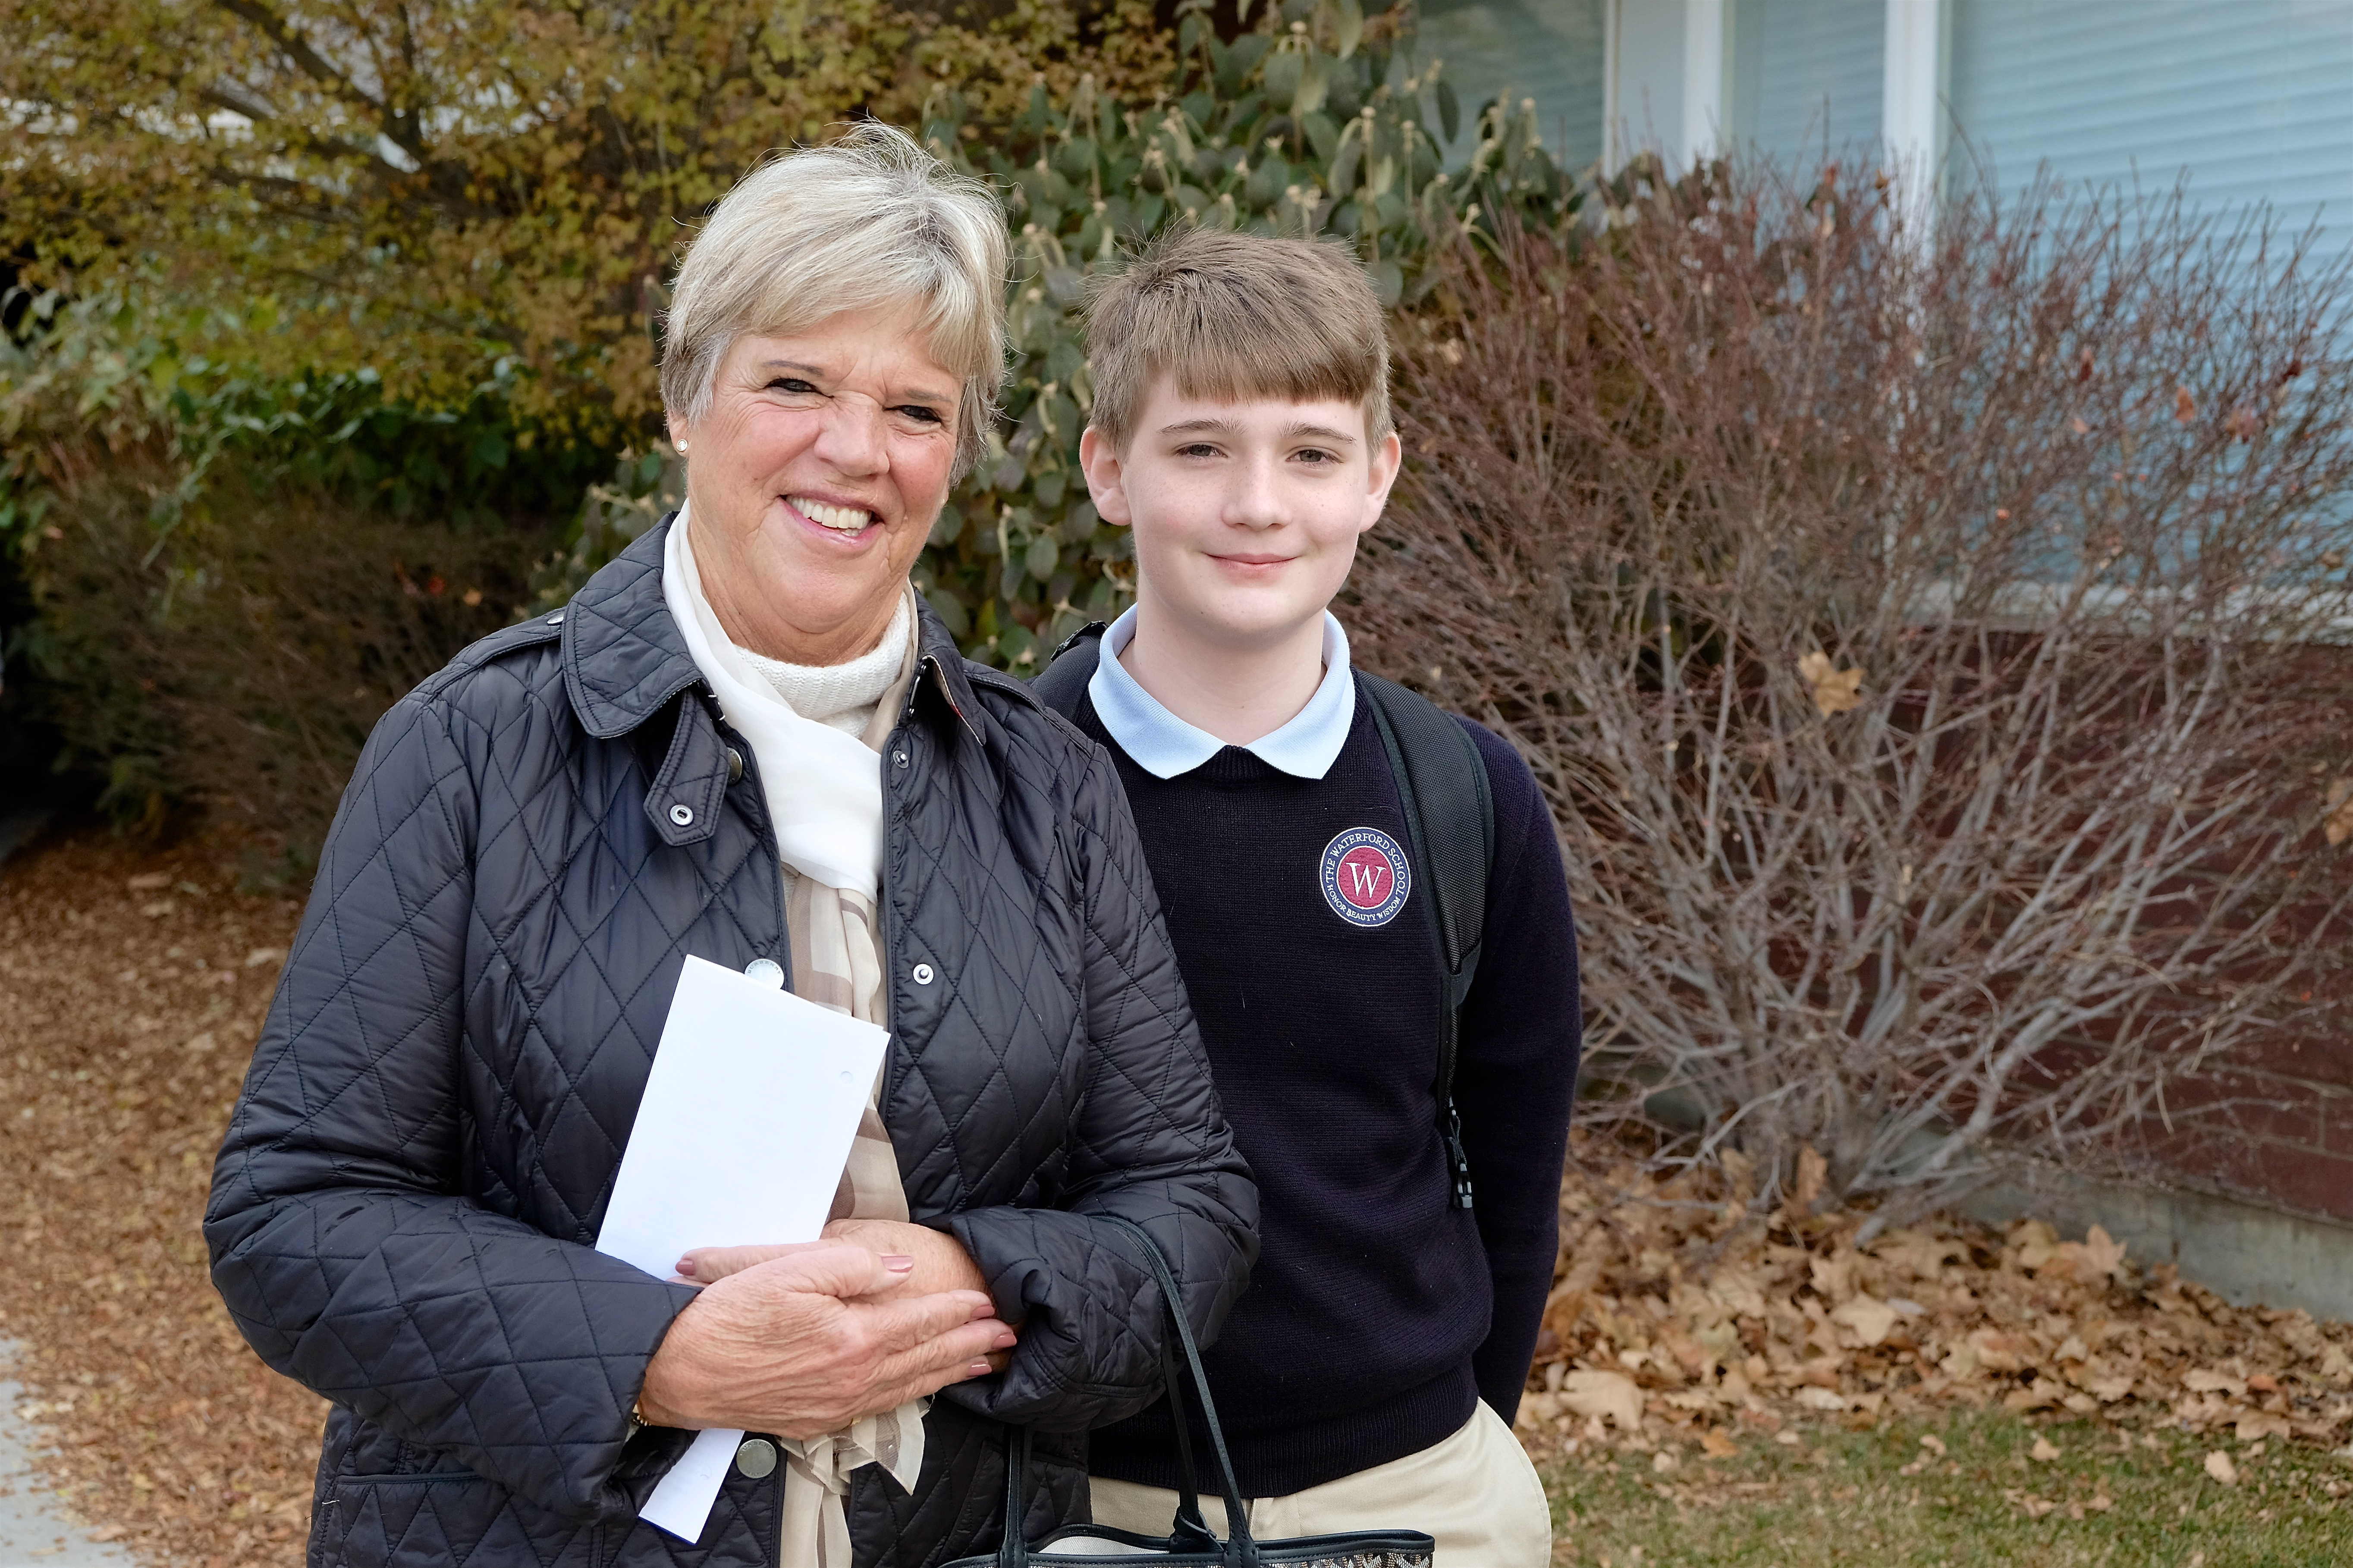 Nancy Heuston and her Grandson at the 32nd Grandparents Visiting Day at Waterford School, 2018